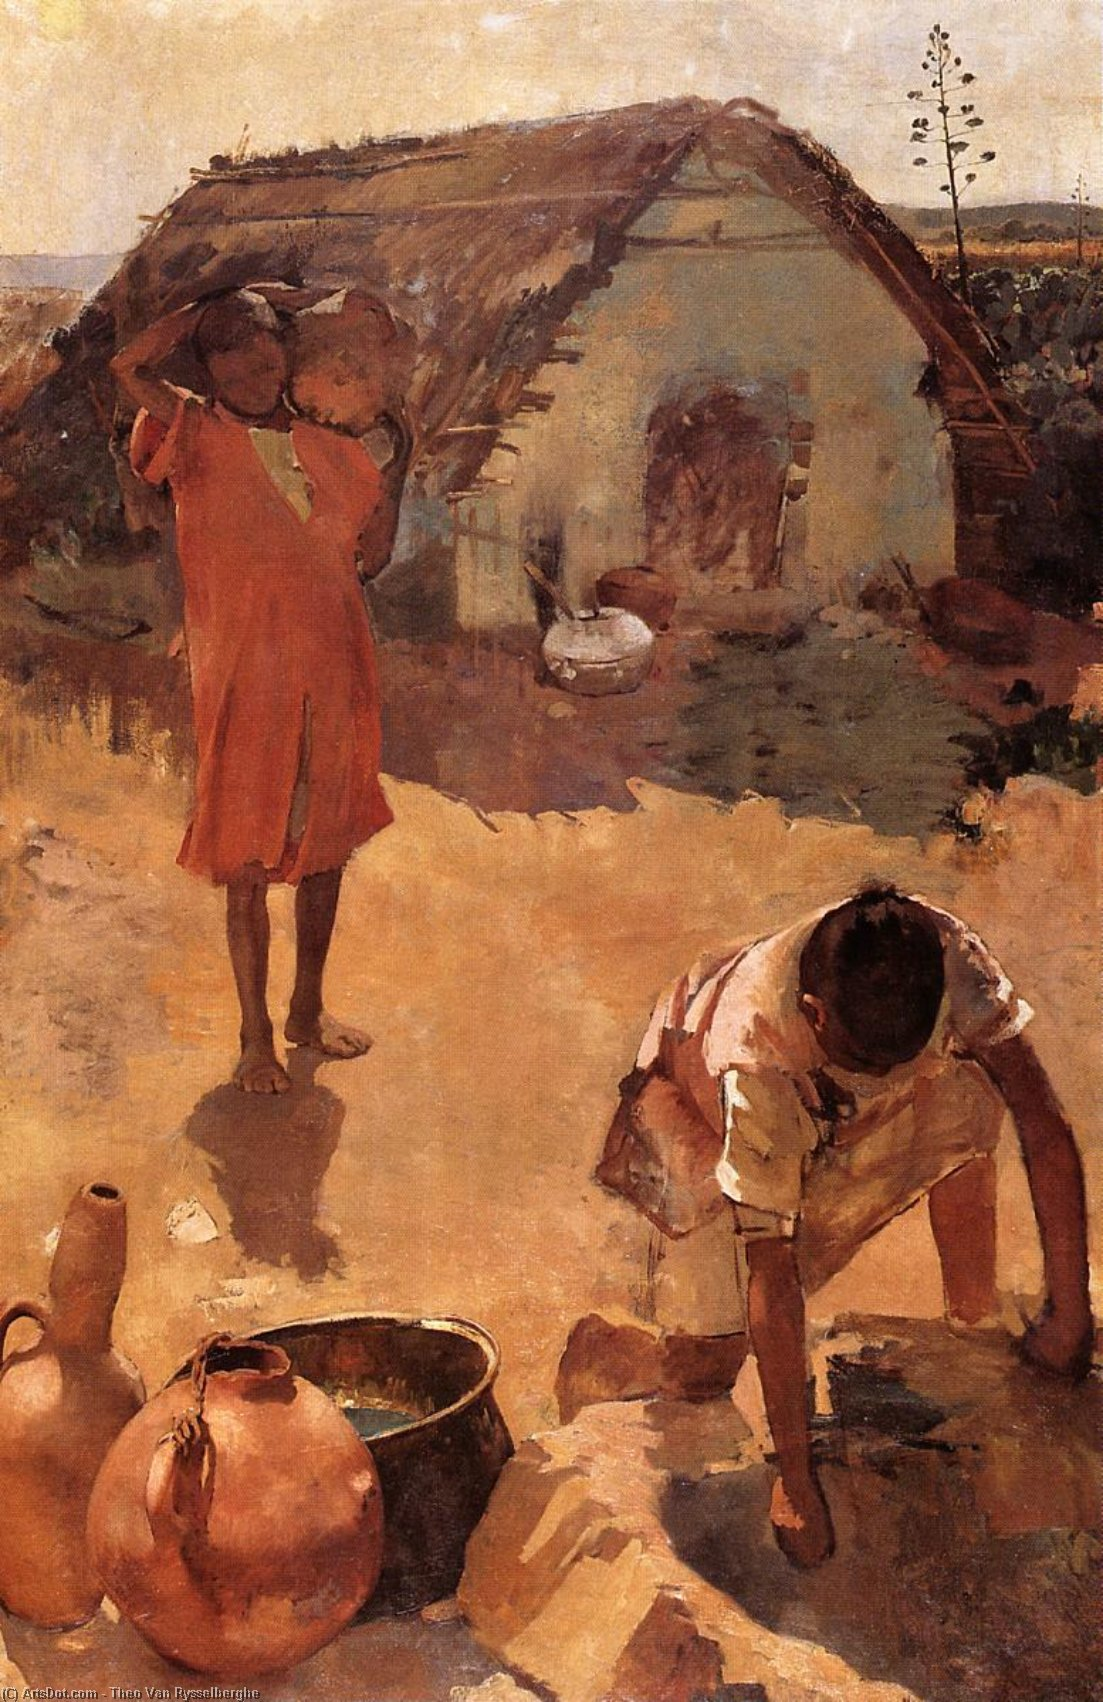 Figures near a Well in Morocco, Oil On Canvas by Theo Van Rysselberghe (1862-1926, Belgium)